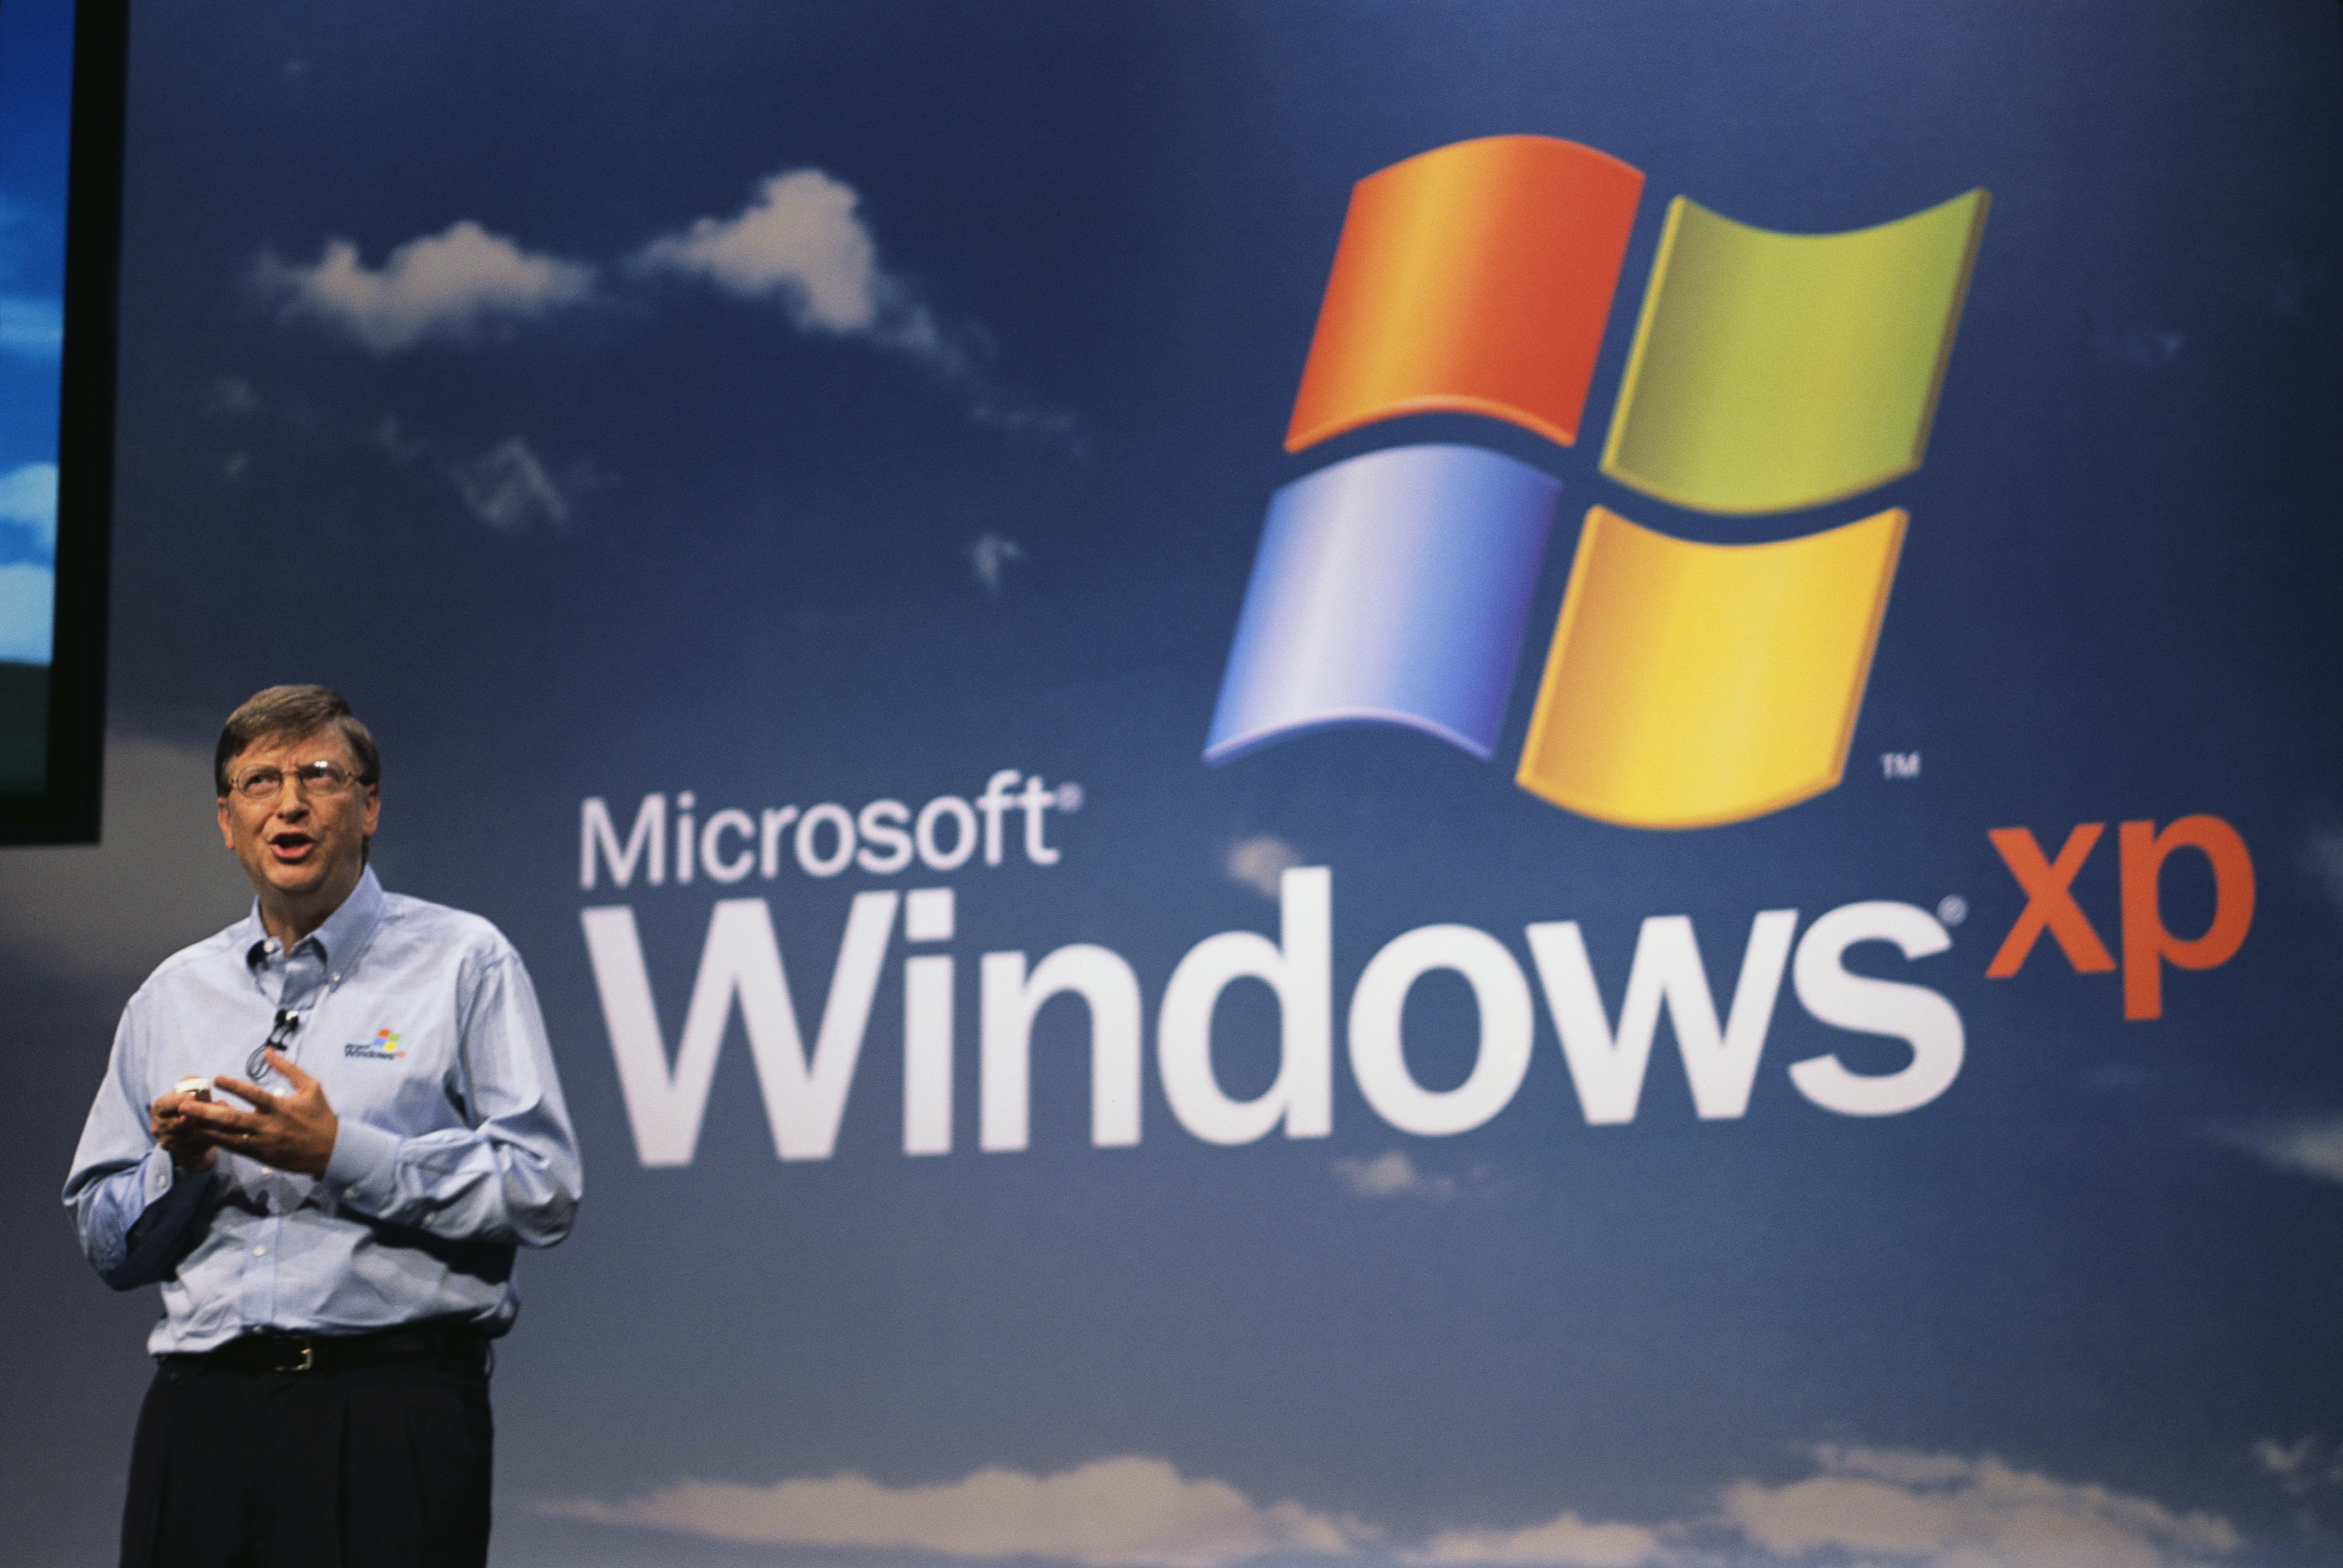 Bill Gates speaking on stage at the launch of Windows XP.